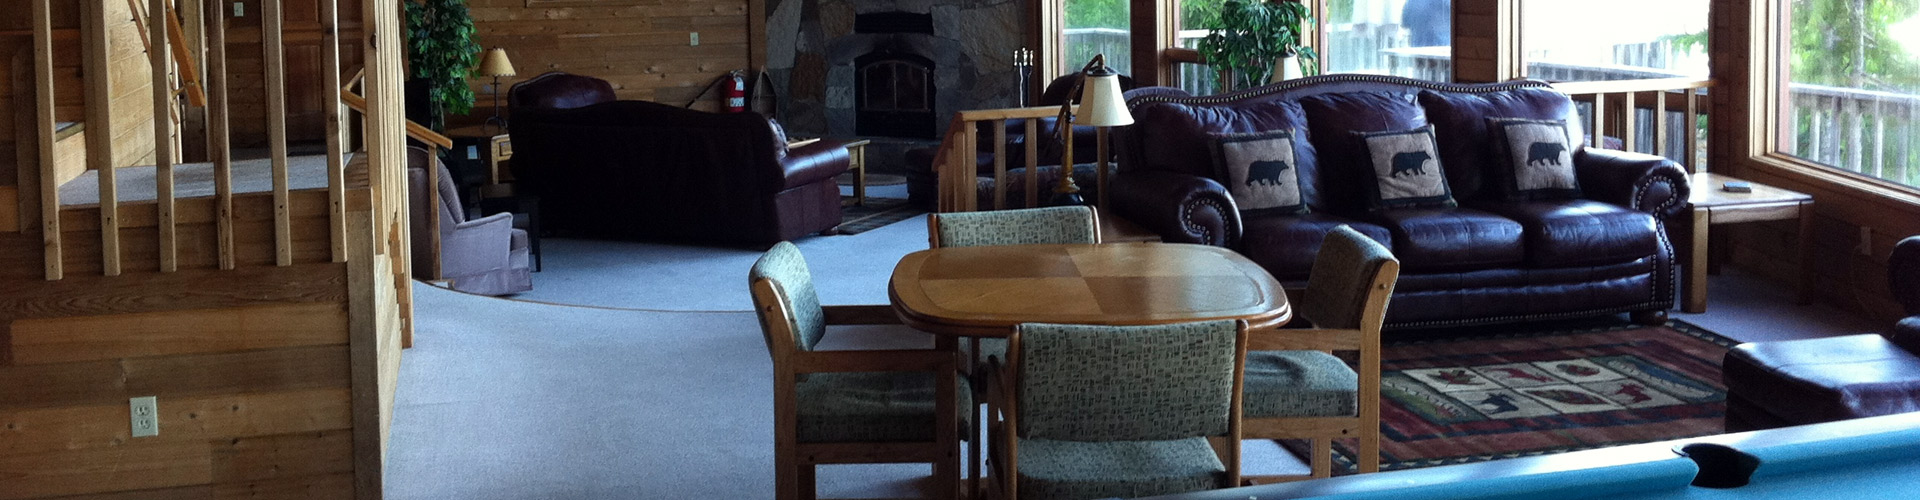 Spacious Recreation and Game Room at The Lodge at Whale Pass in Alaska